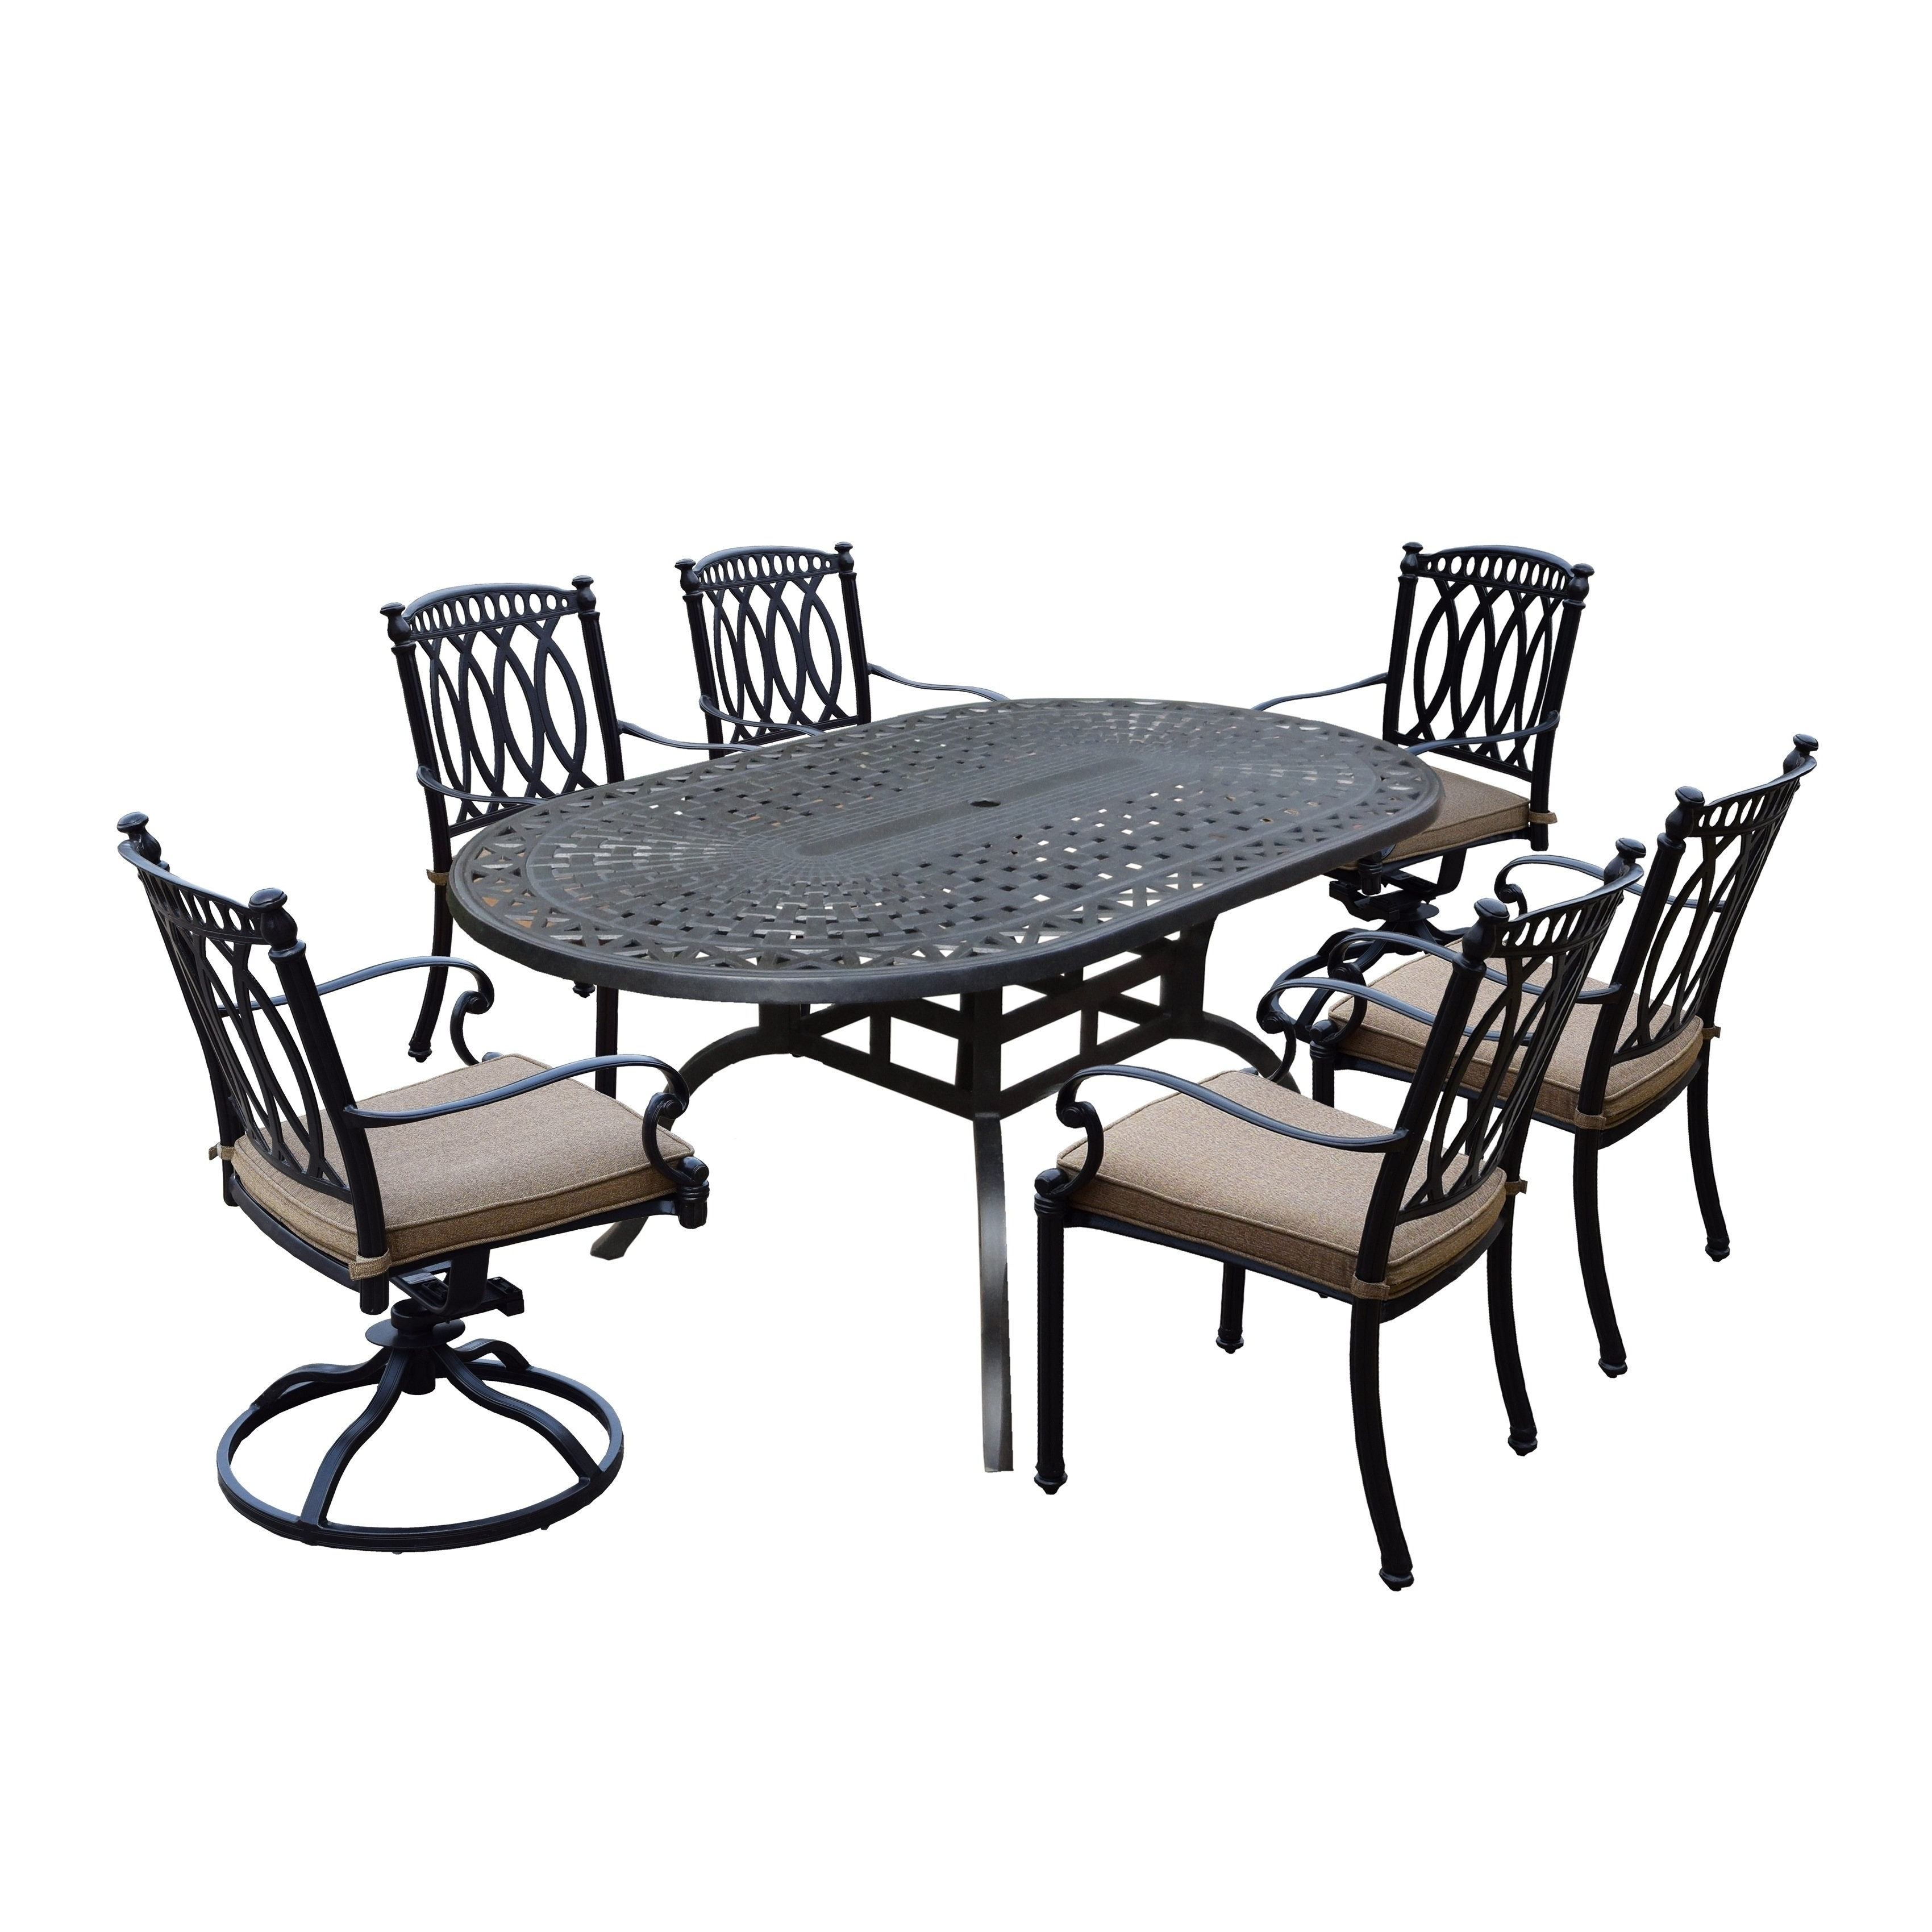 Valencia 72 Inch 7 Piece Dining Sets Intended For Newest Milan 7 Piece Set With Oval Table, 4 Cushioned And Stackable Chairs (View 16 of 25)